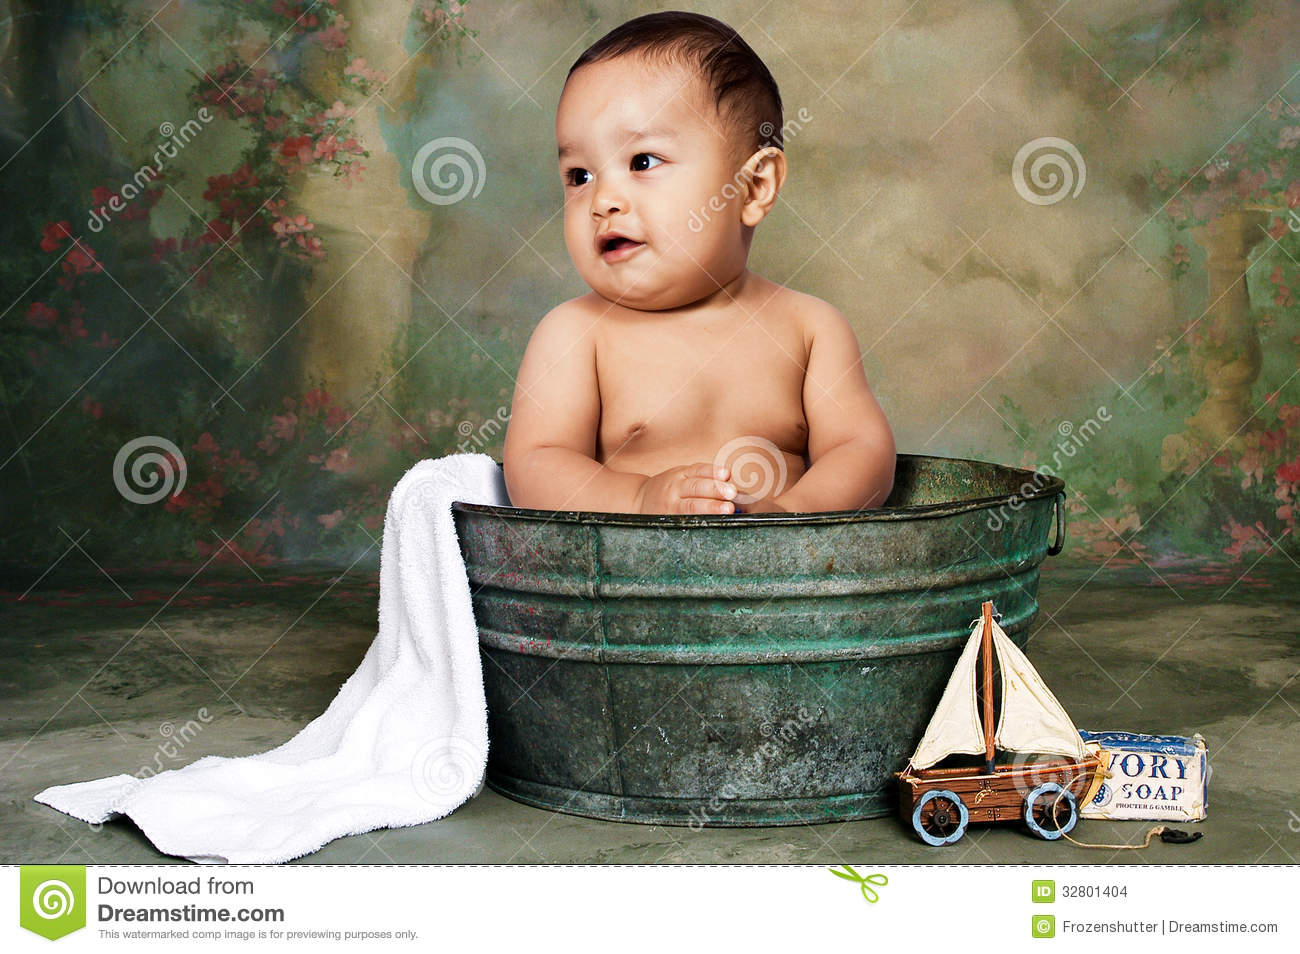 Baby Boy Taking A Bath In A Tub Stock Photo - Image of cool ...